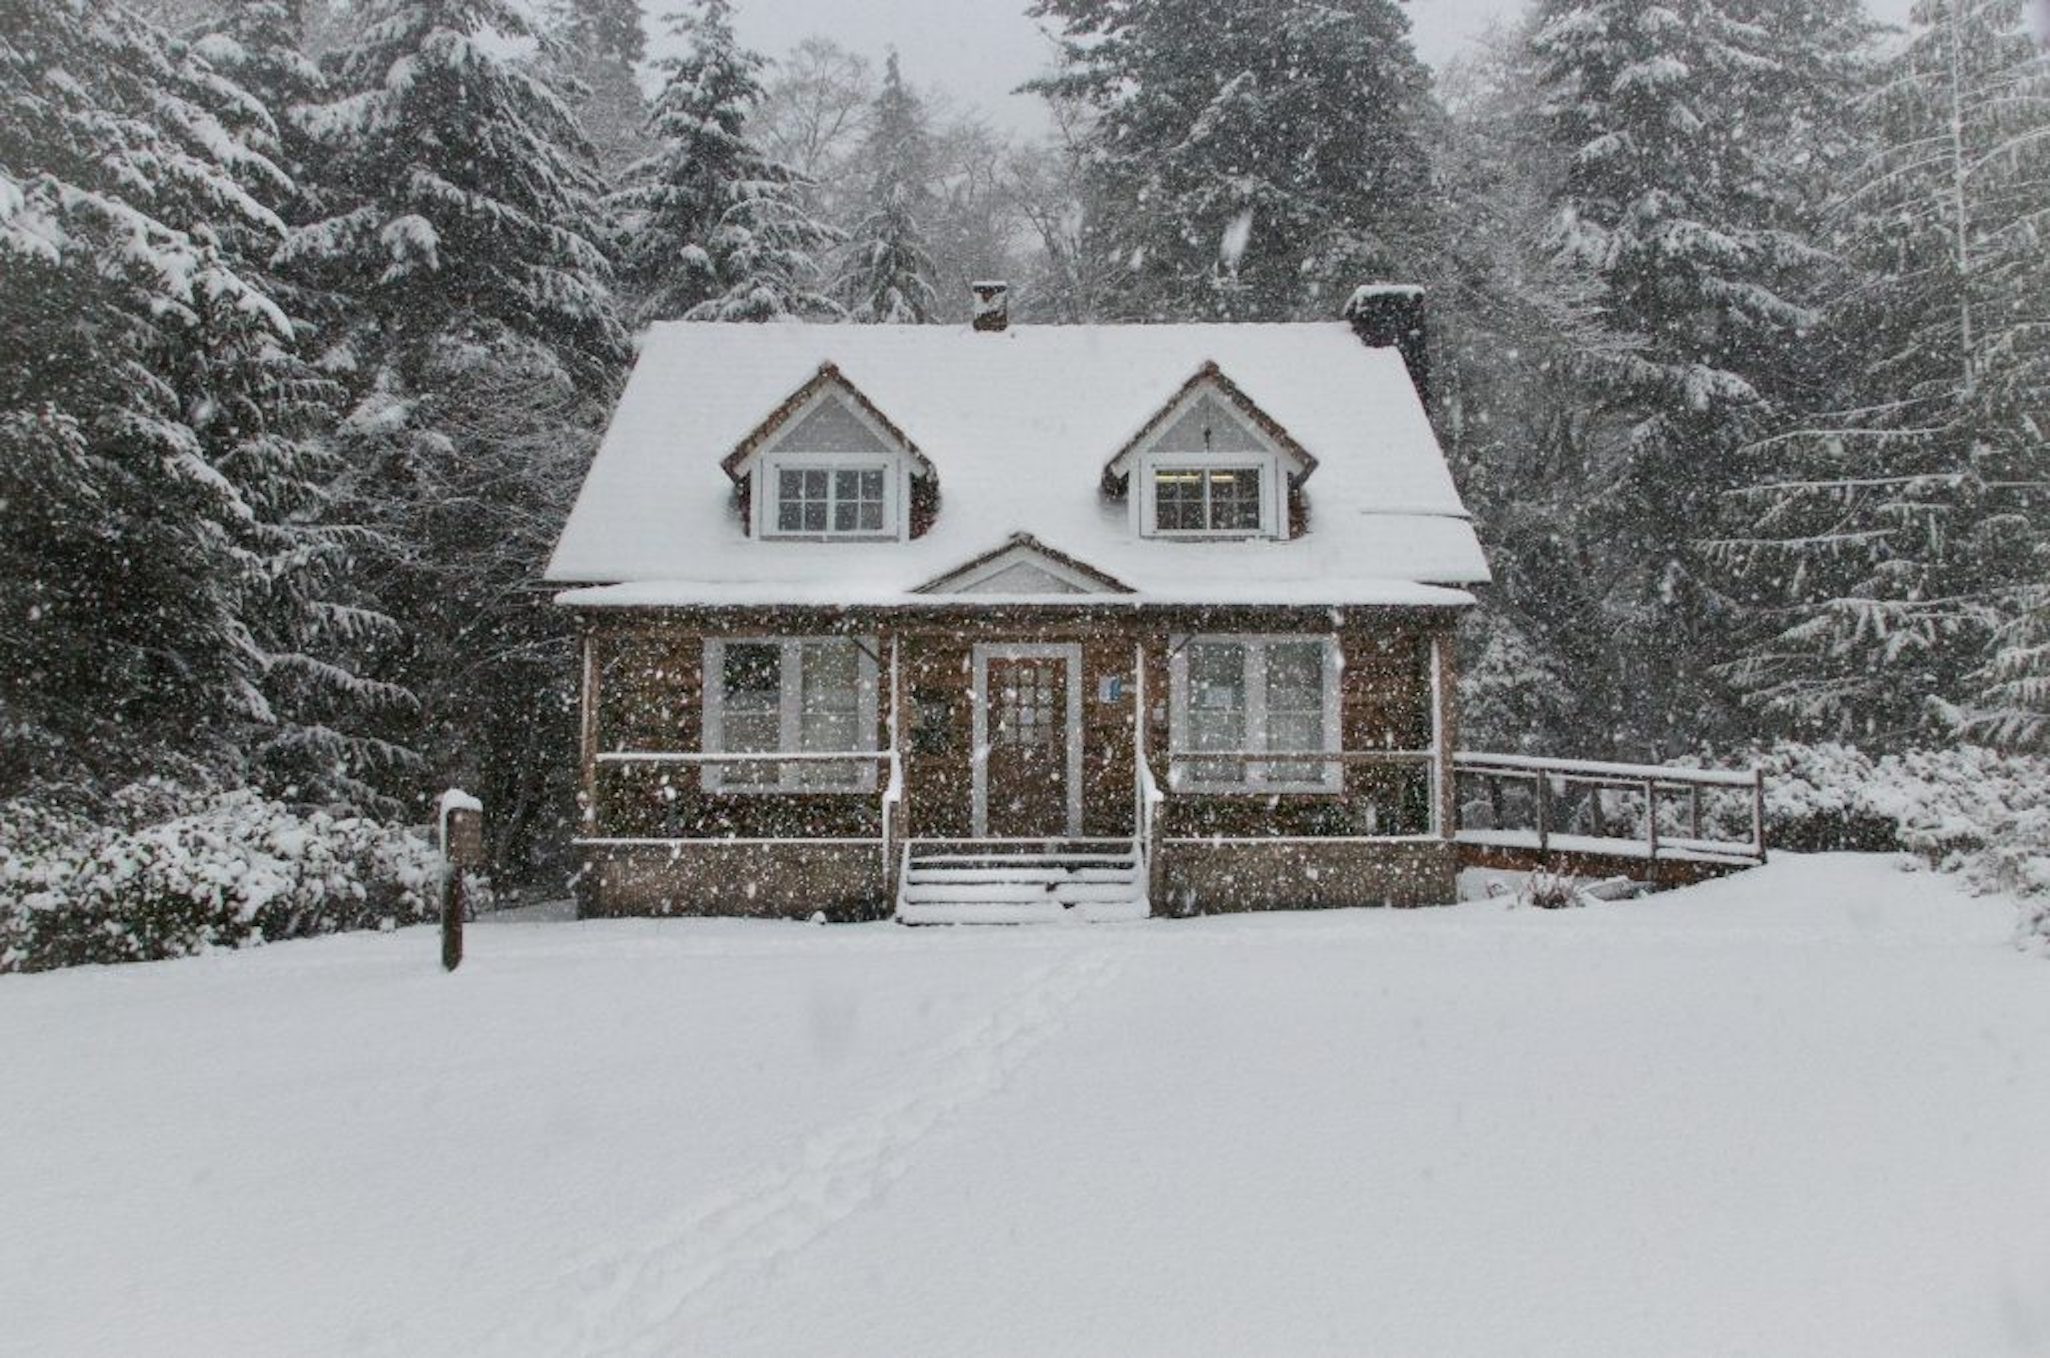 Snowy Home In The Woods